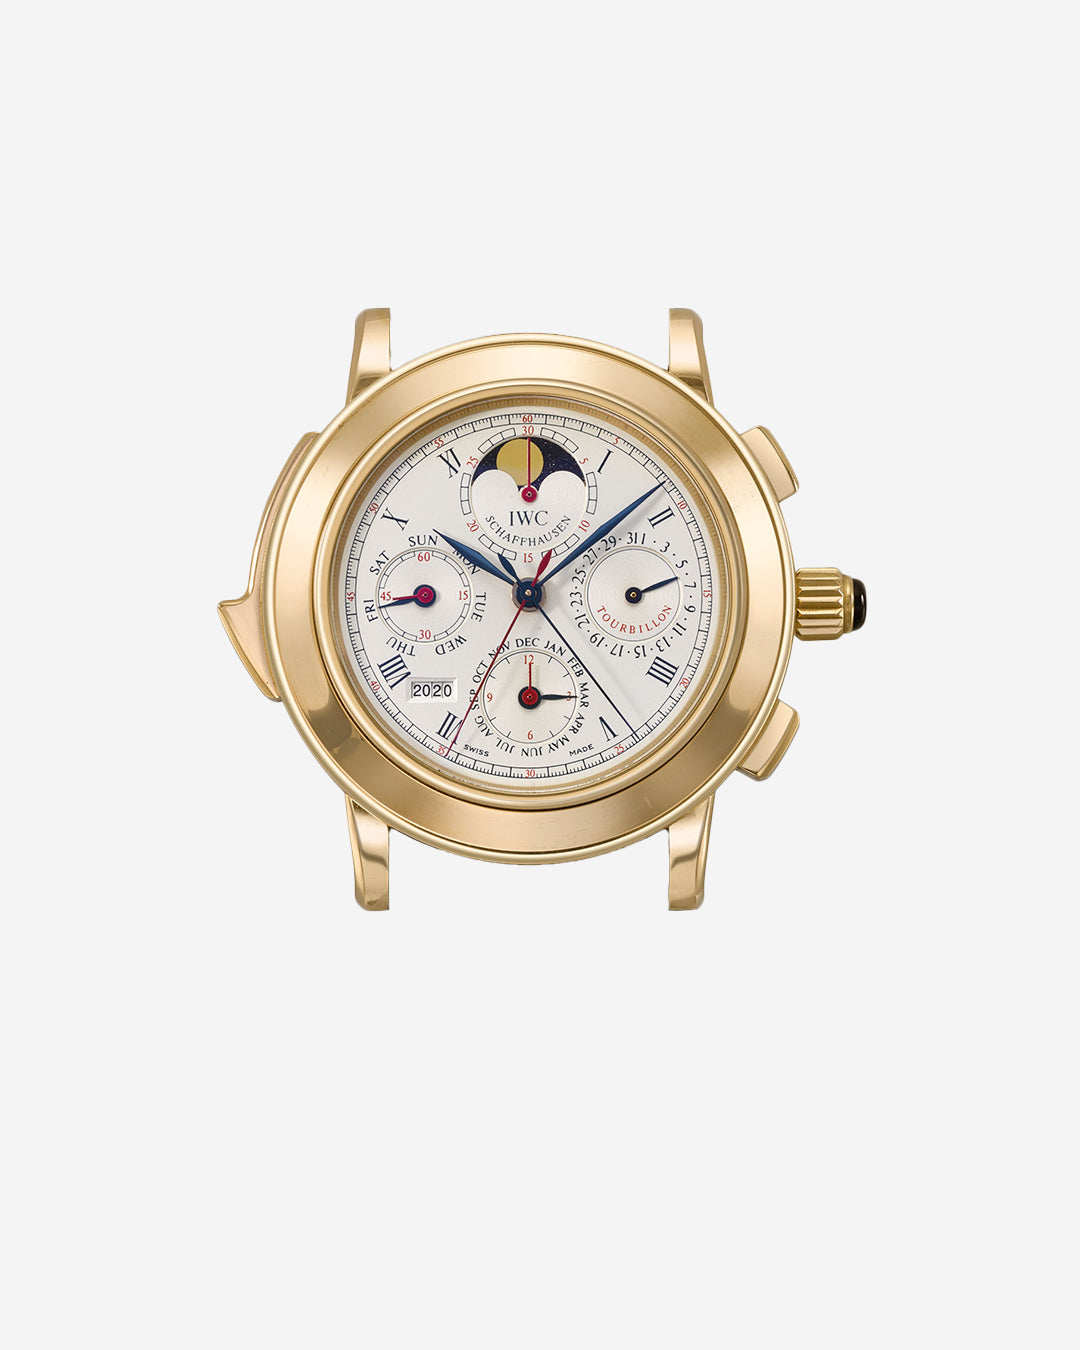 The IWC Il Destriero Scafusia grand complication wristwatch in yellow gold for A Collected Man London